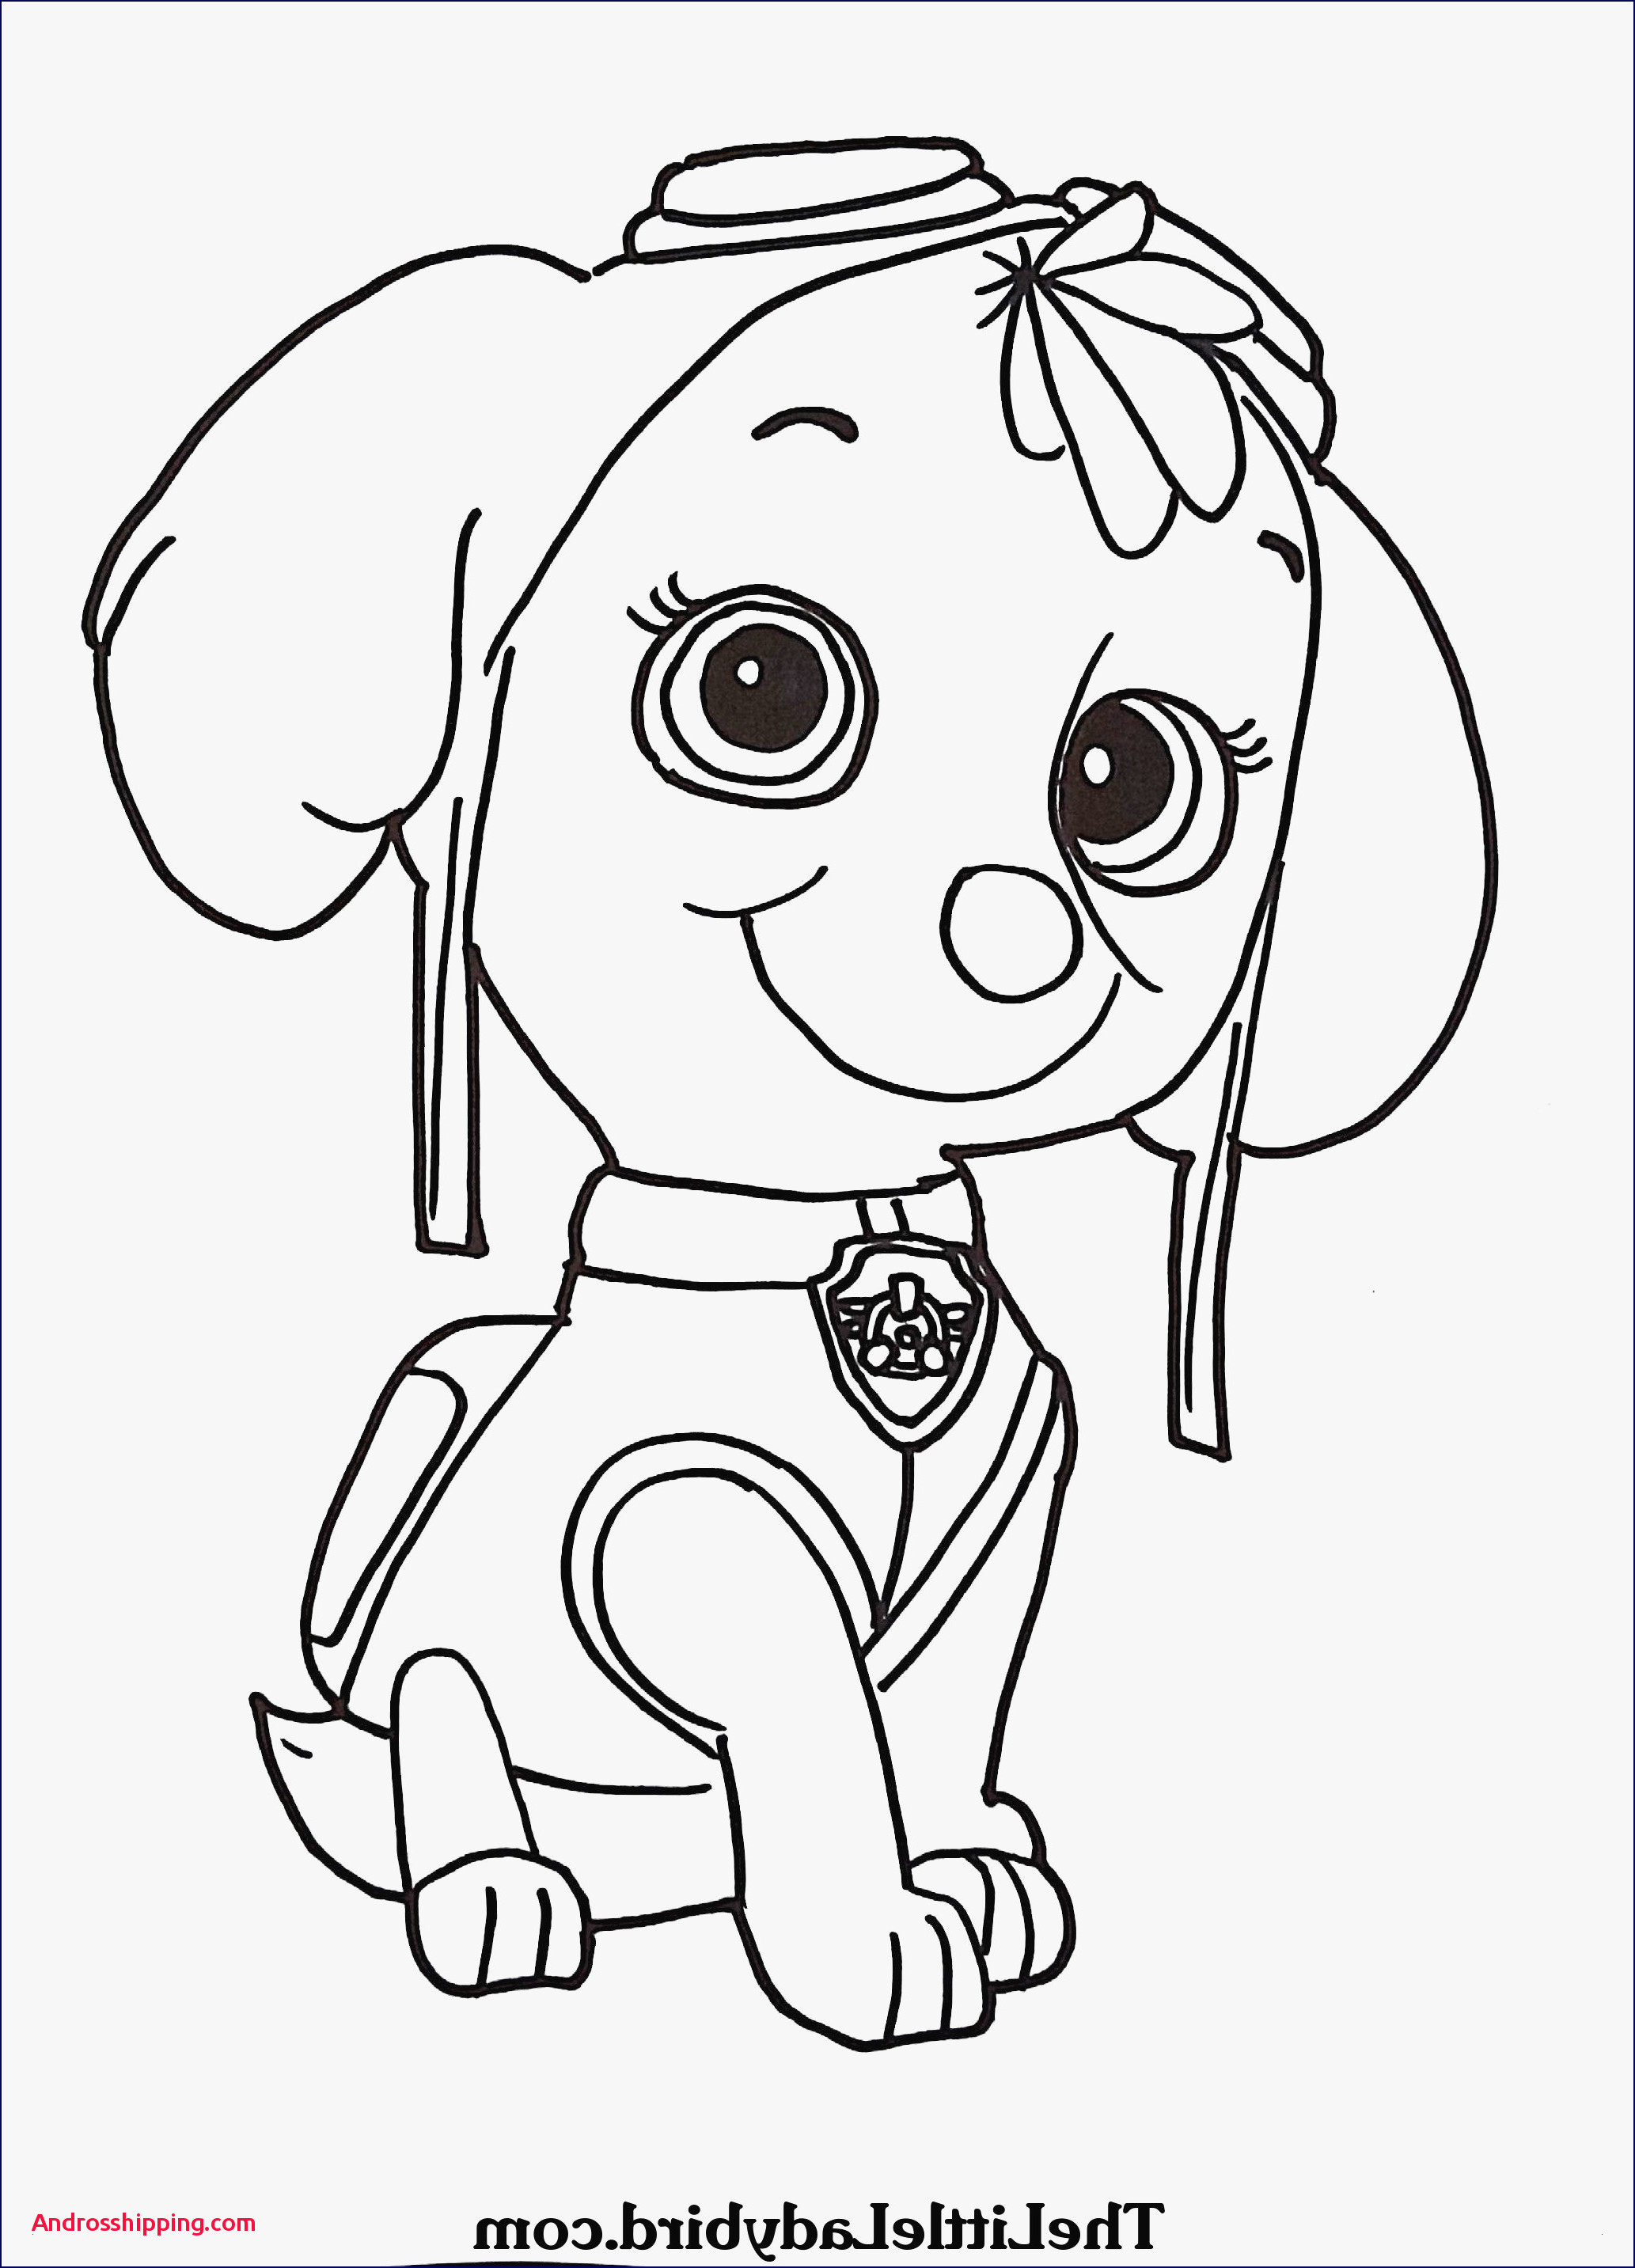 Paw Patrol Ausmalbild Genial 10 Awesome Coloring Pages Zuma From Paw Patrol androsshipping Sammlung